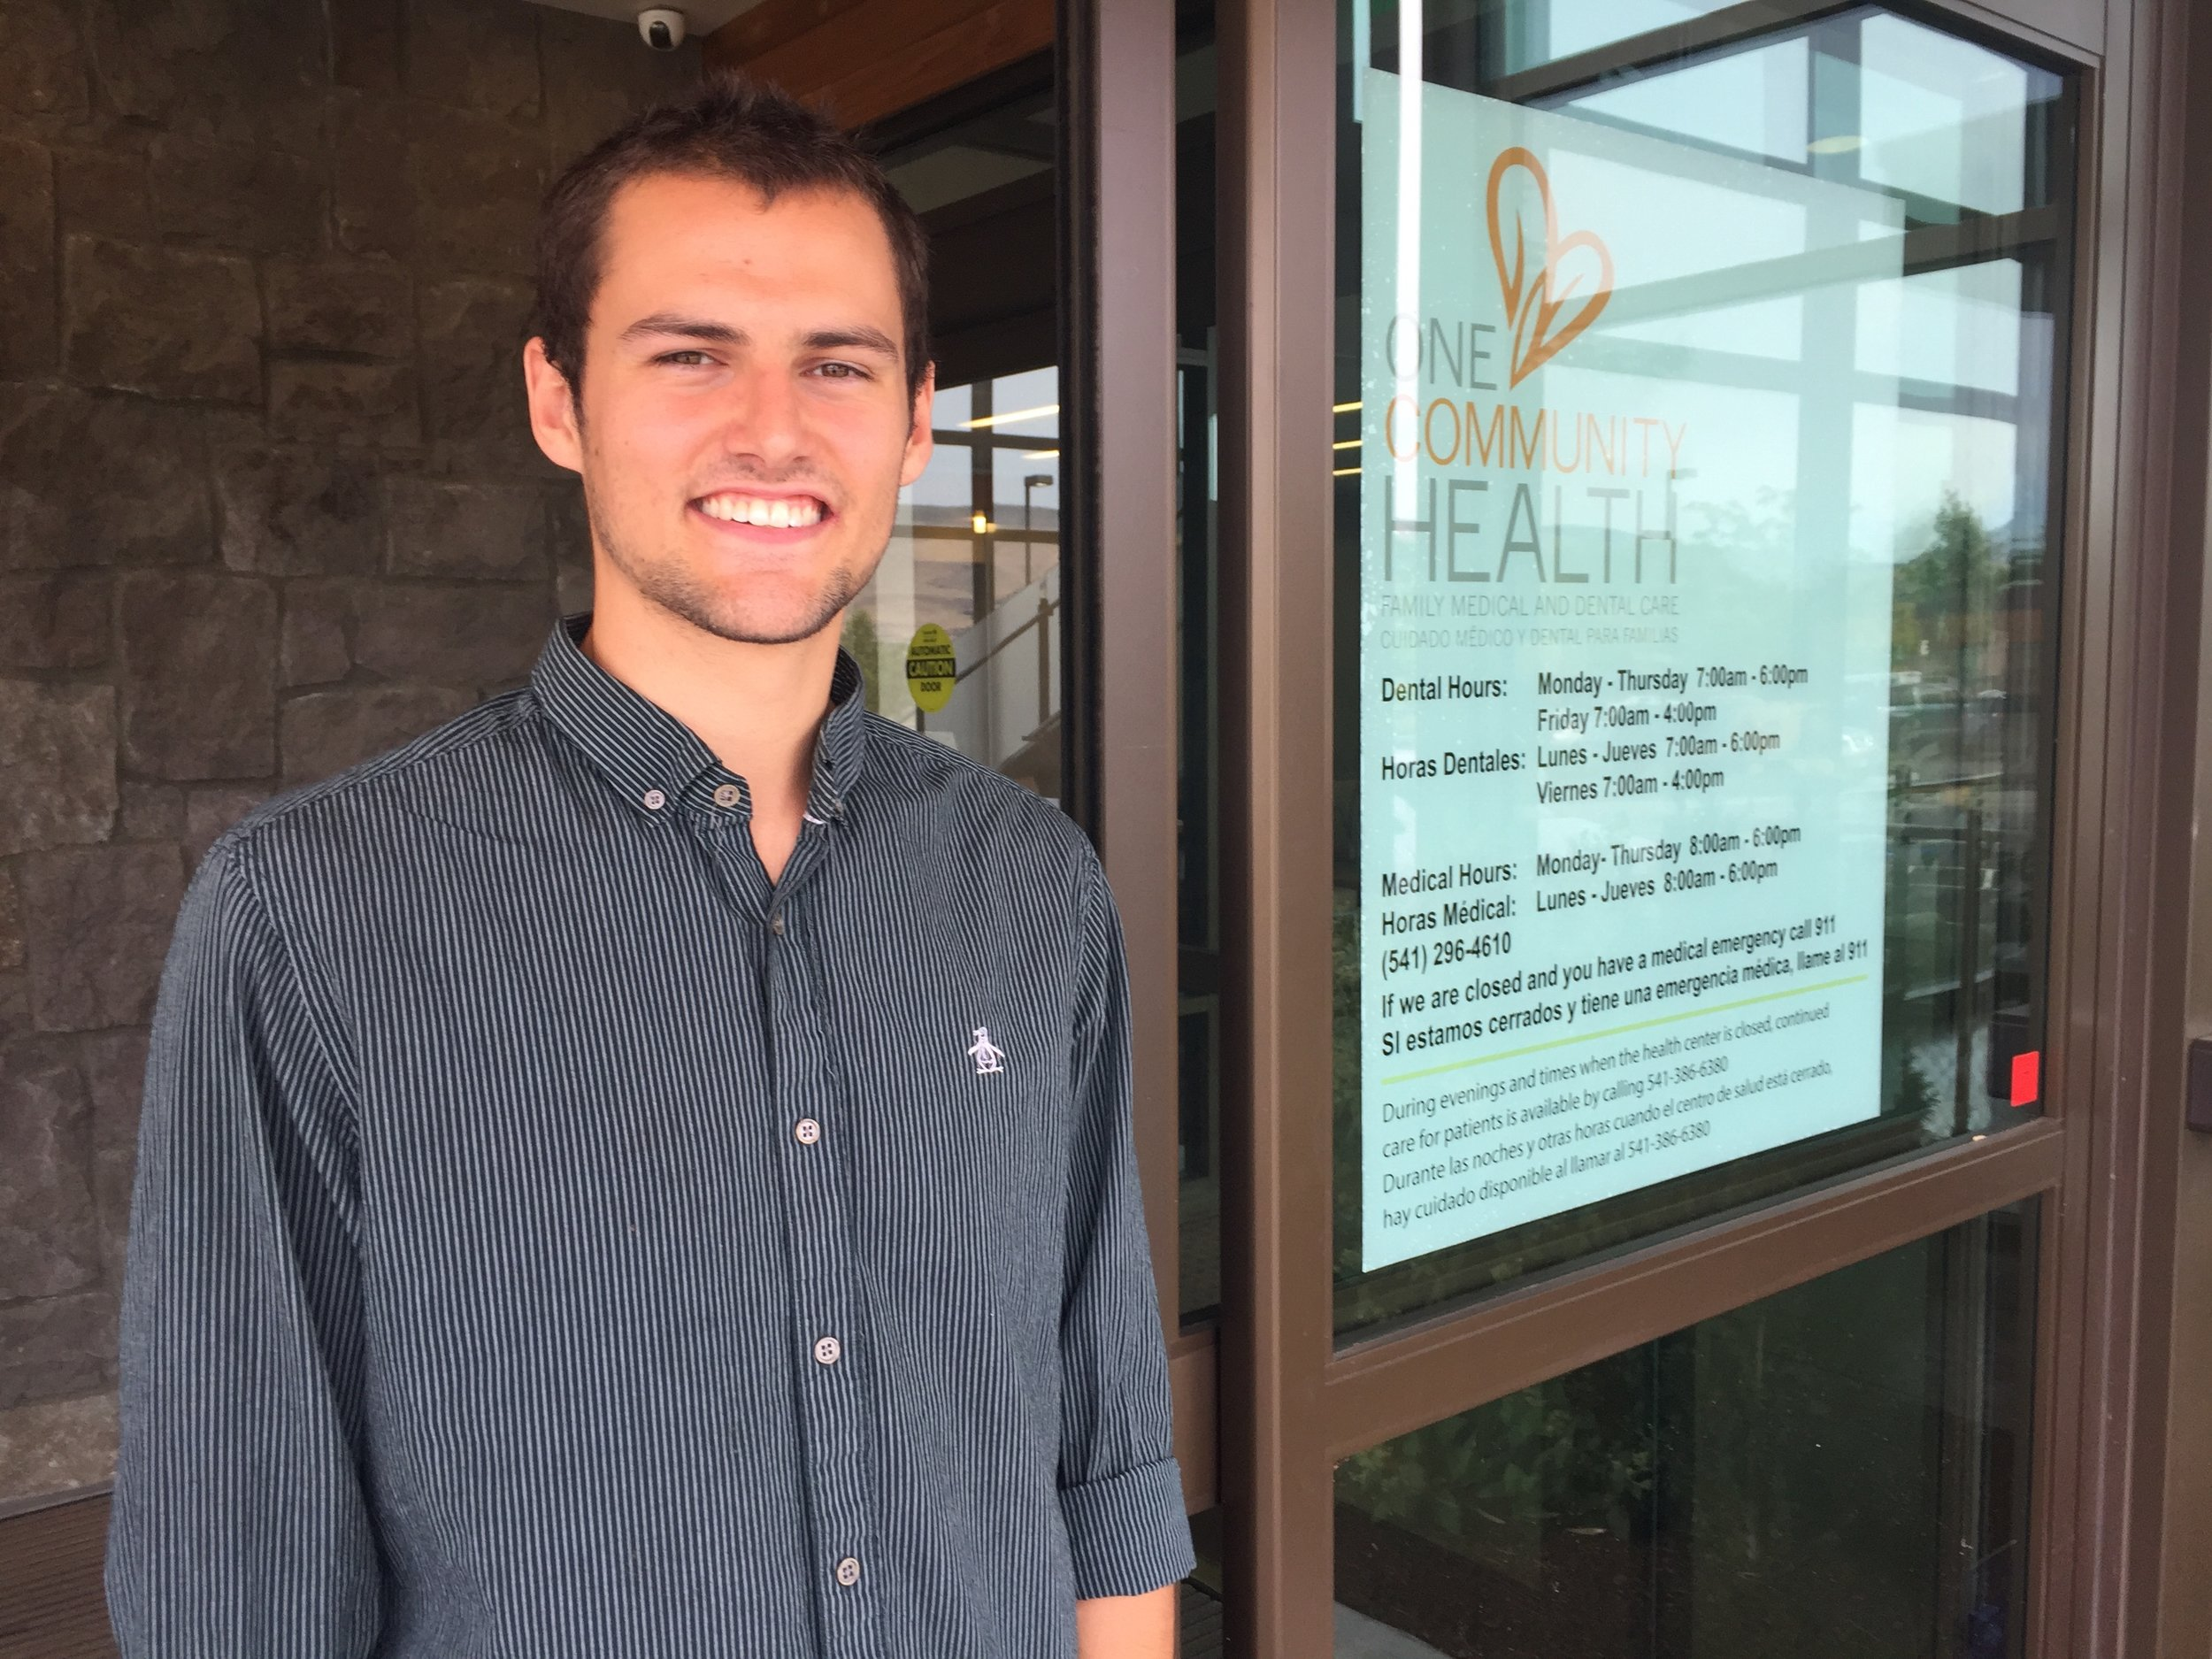 Colin Noonan at One Community Health in The Dalles.